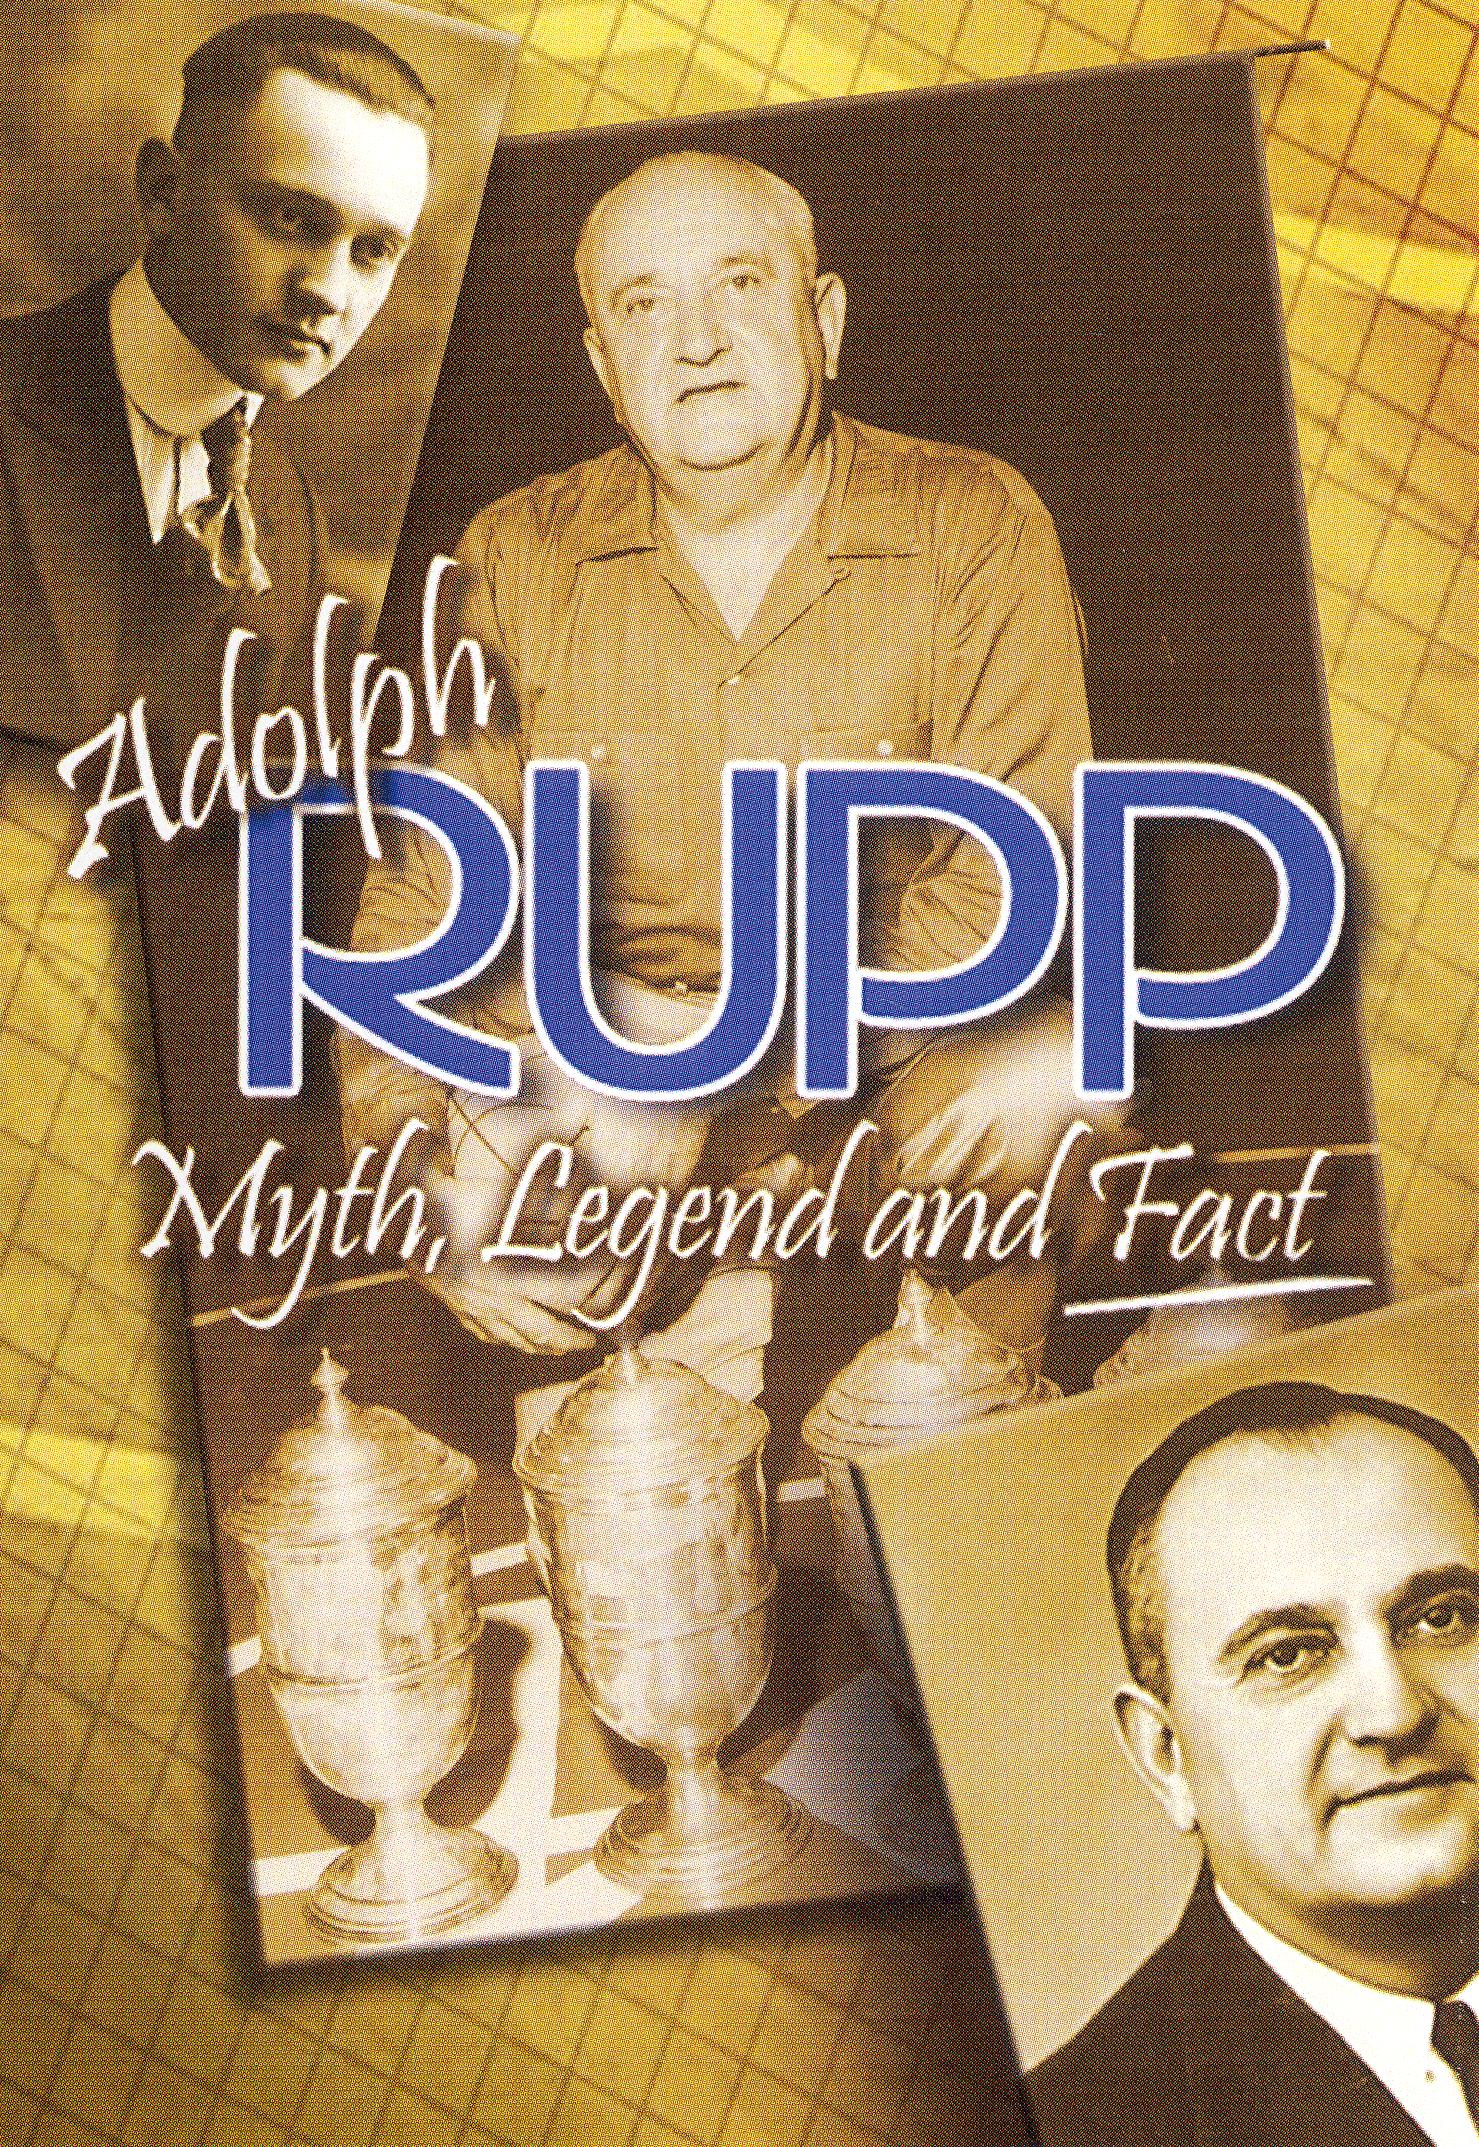 Adolph Rupp: Myth, Legend and Fact